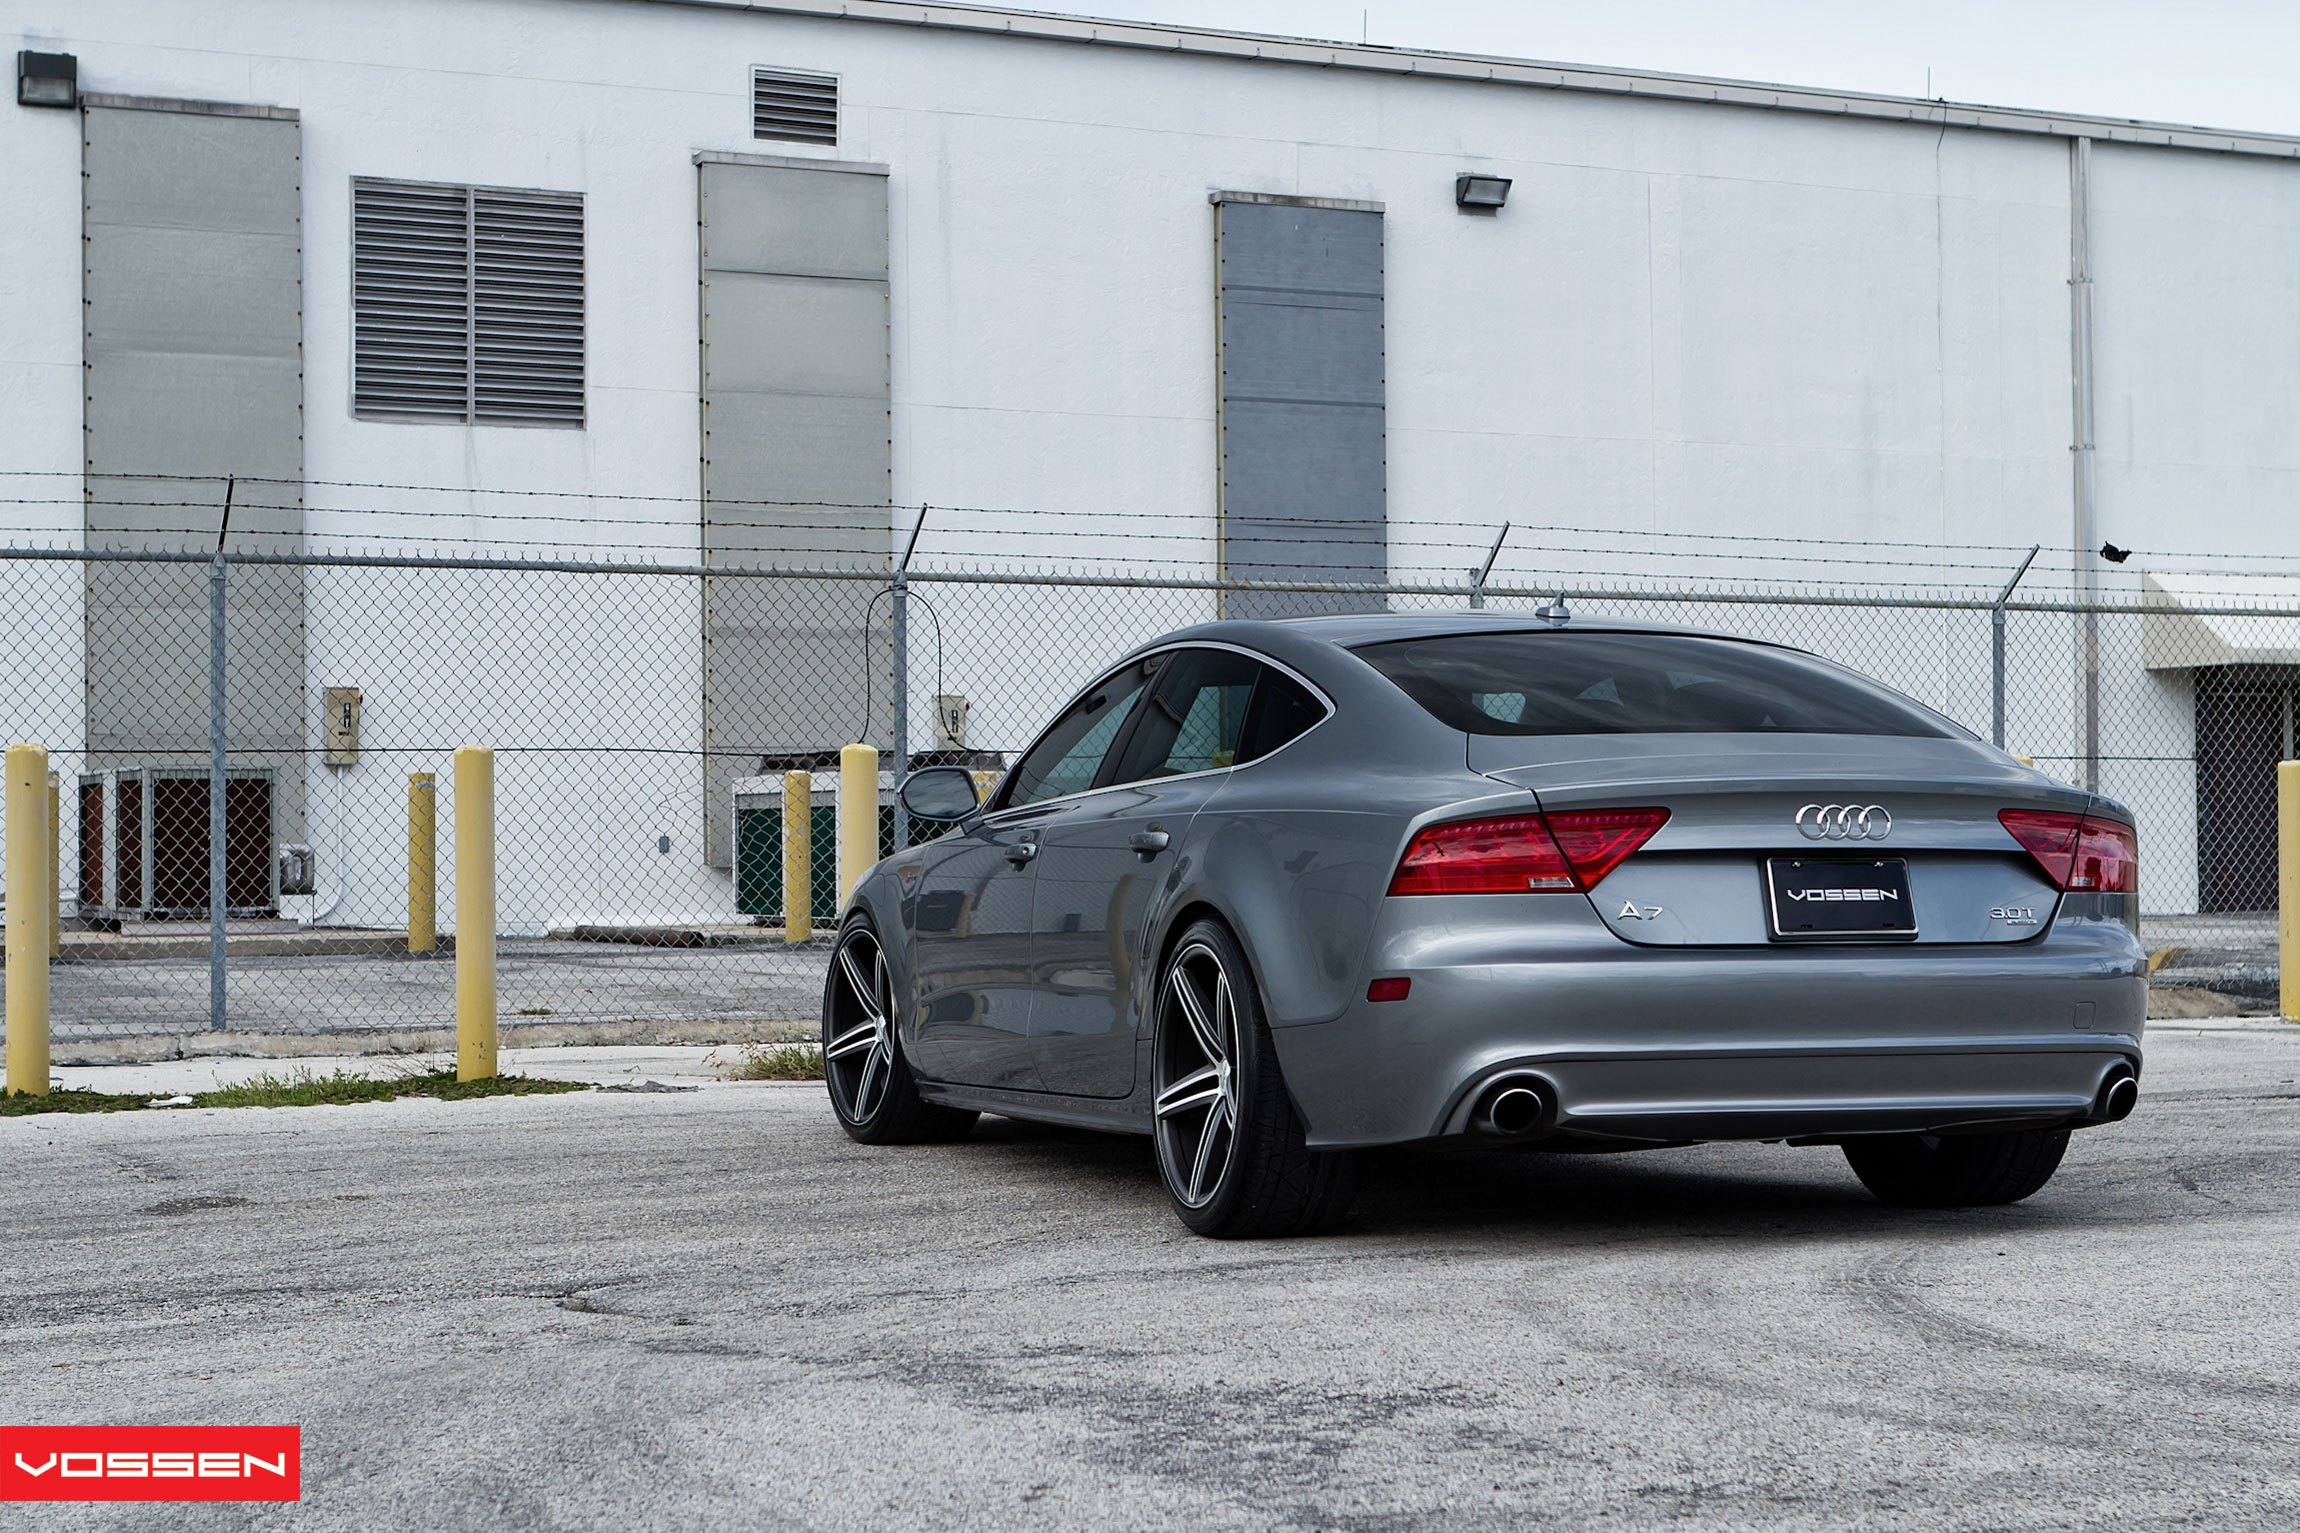 Aftermarket Rear Bumper Cover on Audi A7 - Photo by Vossen